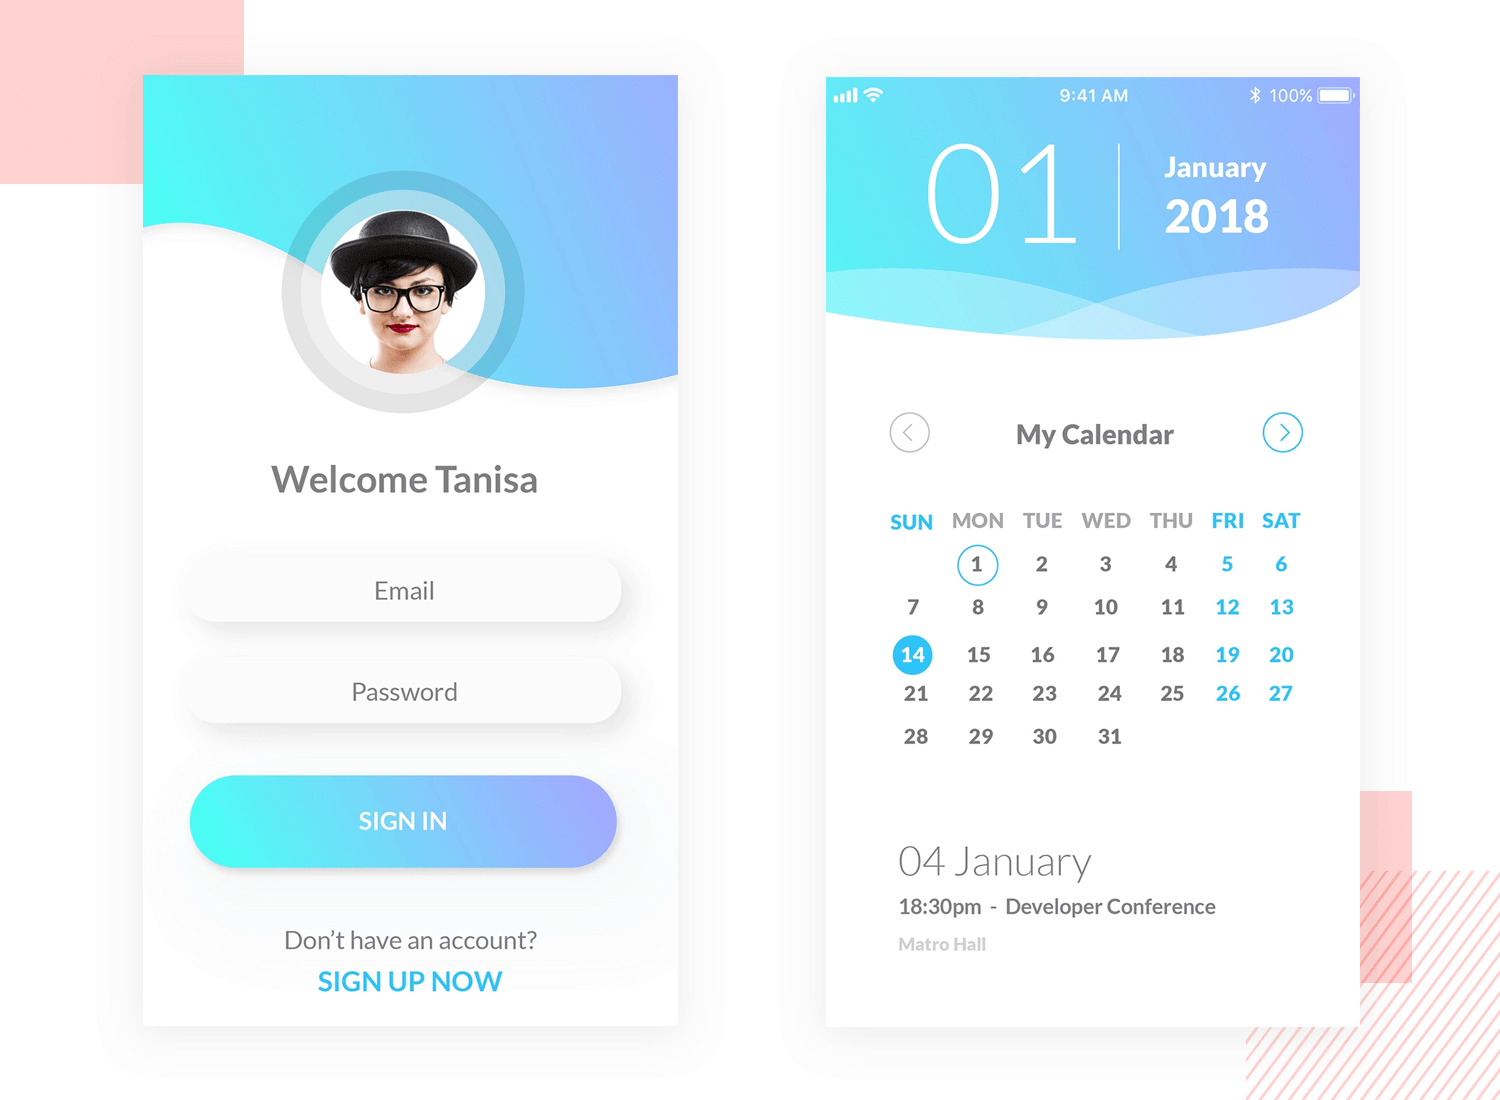 tauhid saujib calendar app design for good ux